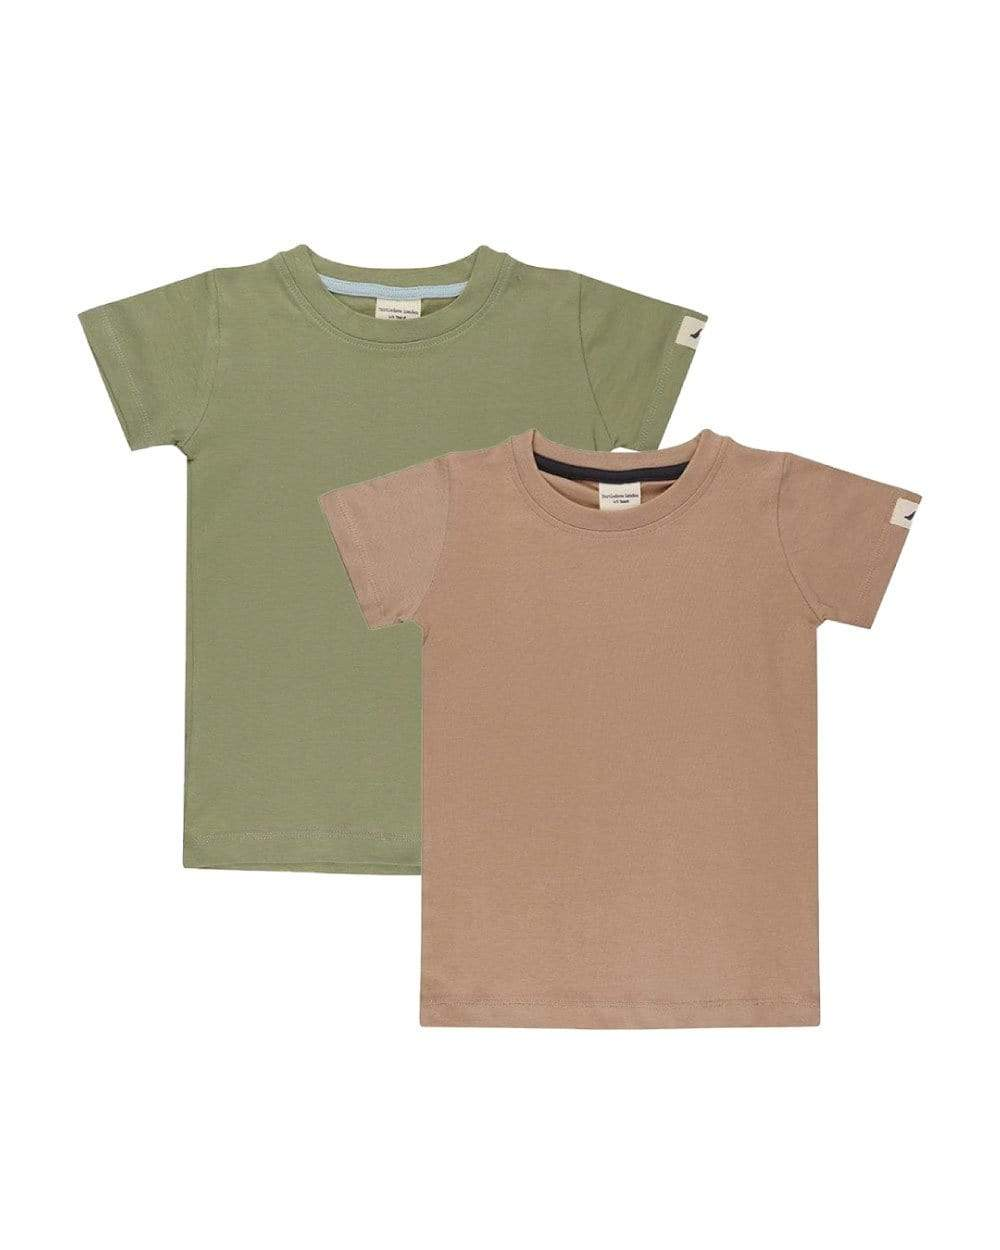 Turtledove London pack of 2 organic cotton t-shirts - KTD370